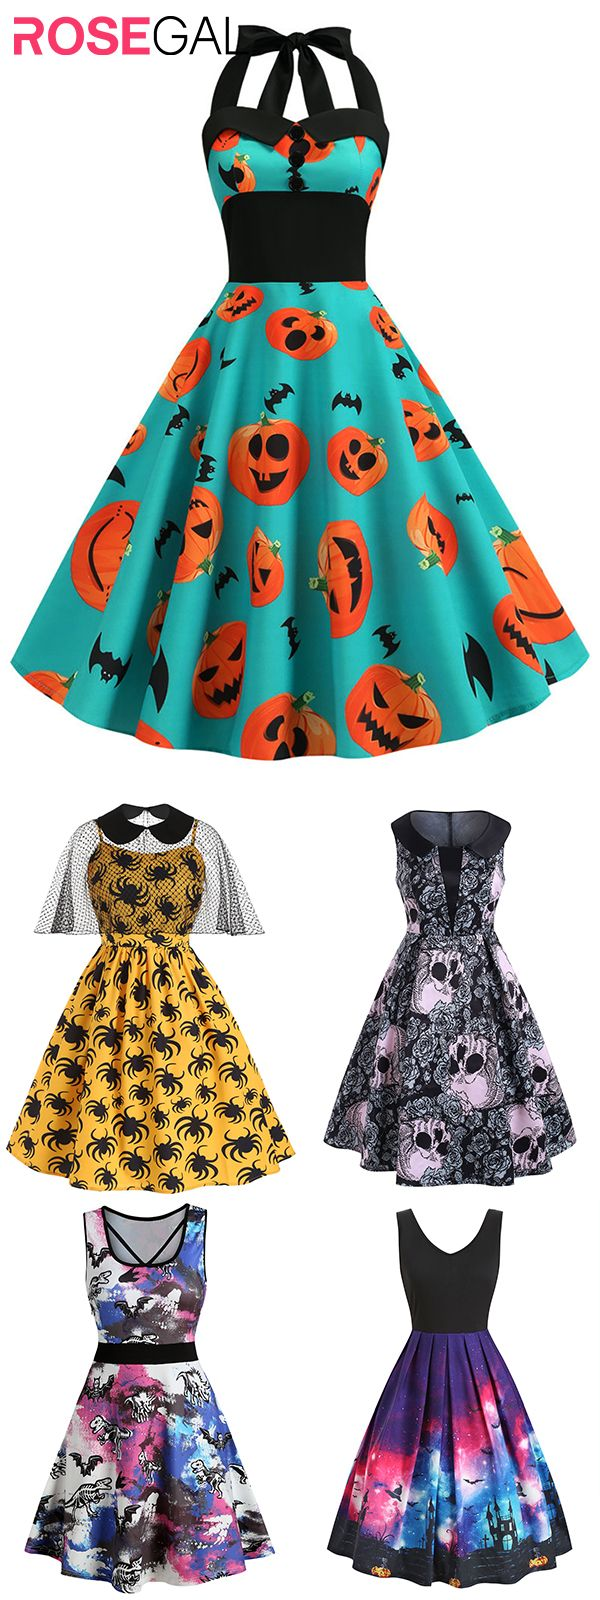 Rosegal plus size Halloween costume dress vintage Halloween dresses ideas